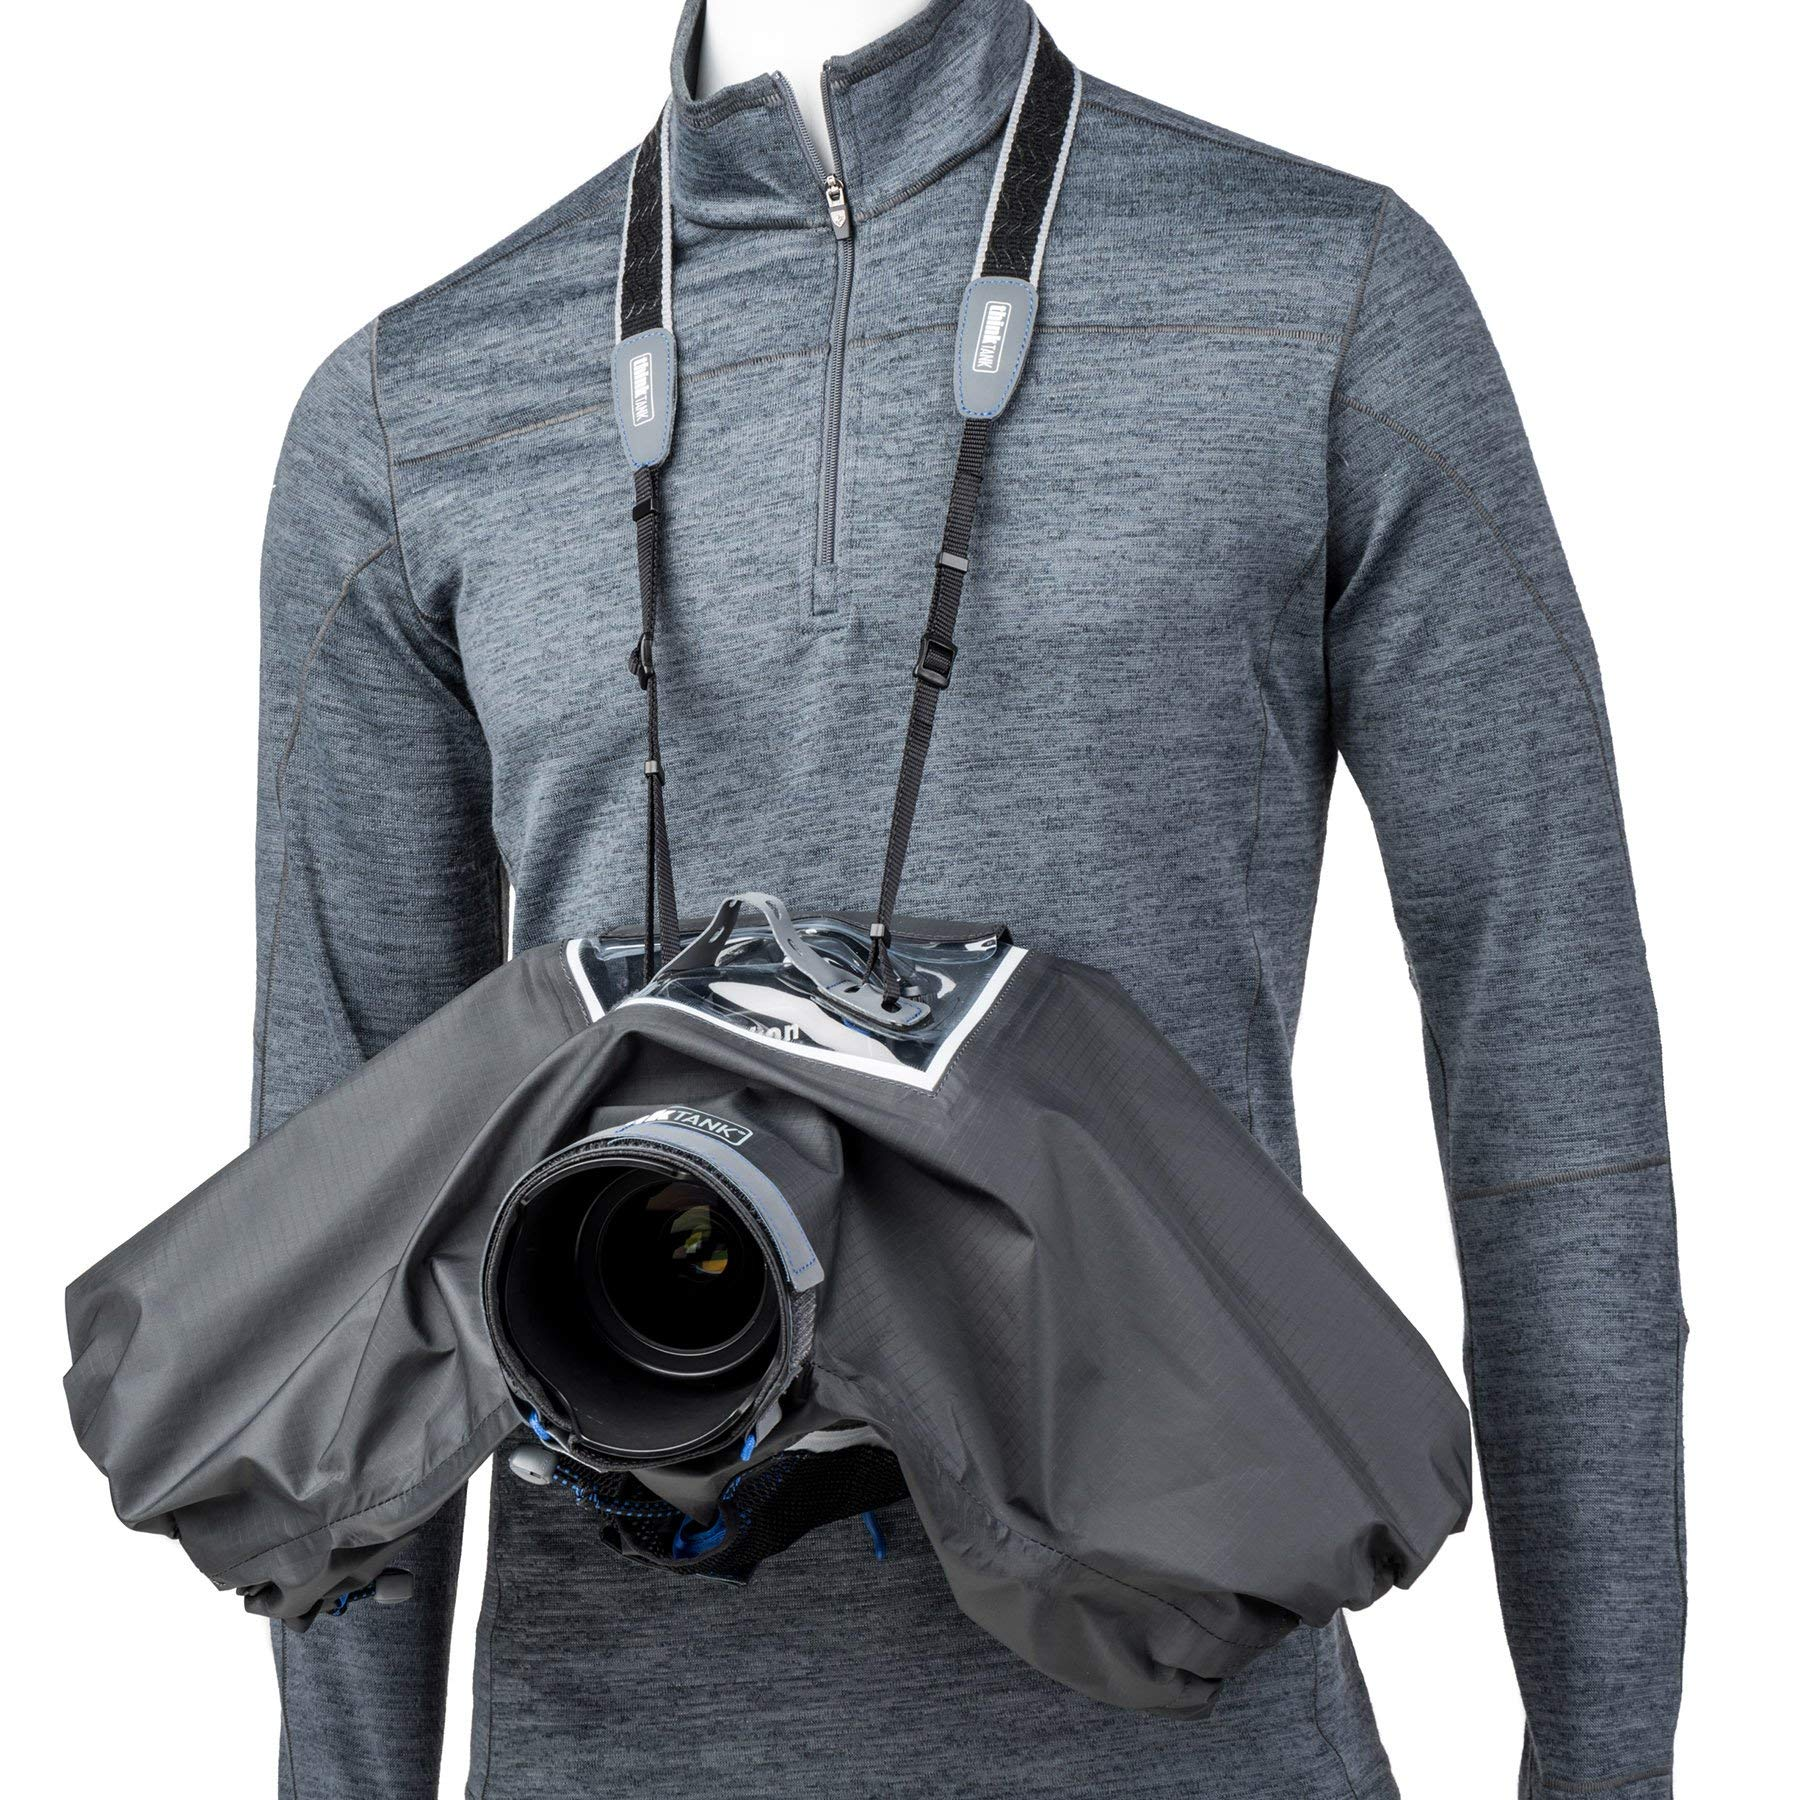 Think Tank Photo Hydrophobia D 24-70 V3 Camera Rain Cover for DSLR Camera with 24-70mm f/2.8 Lens by Think Tank (Image #6)